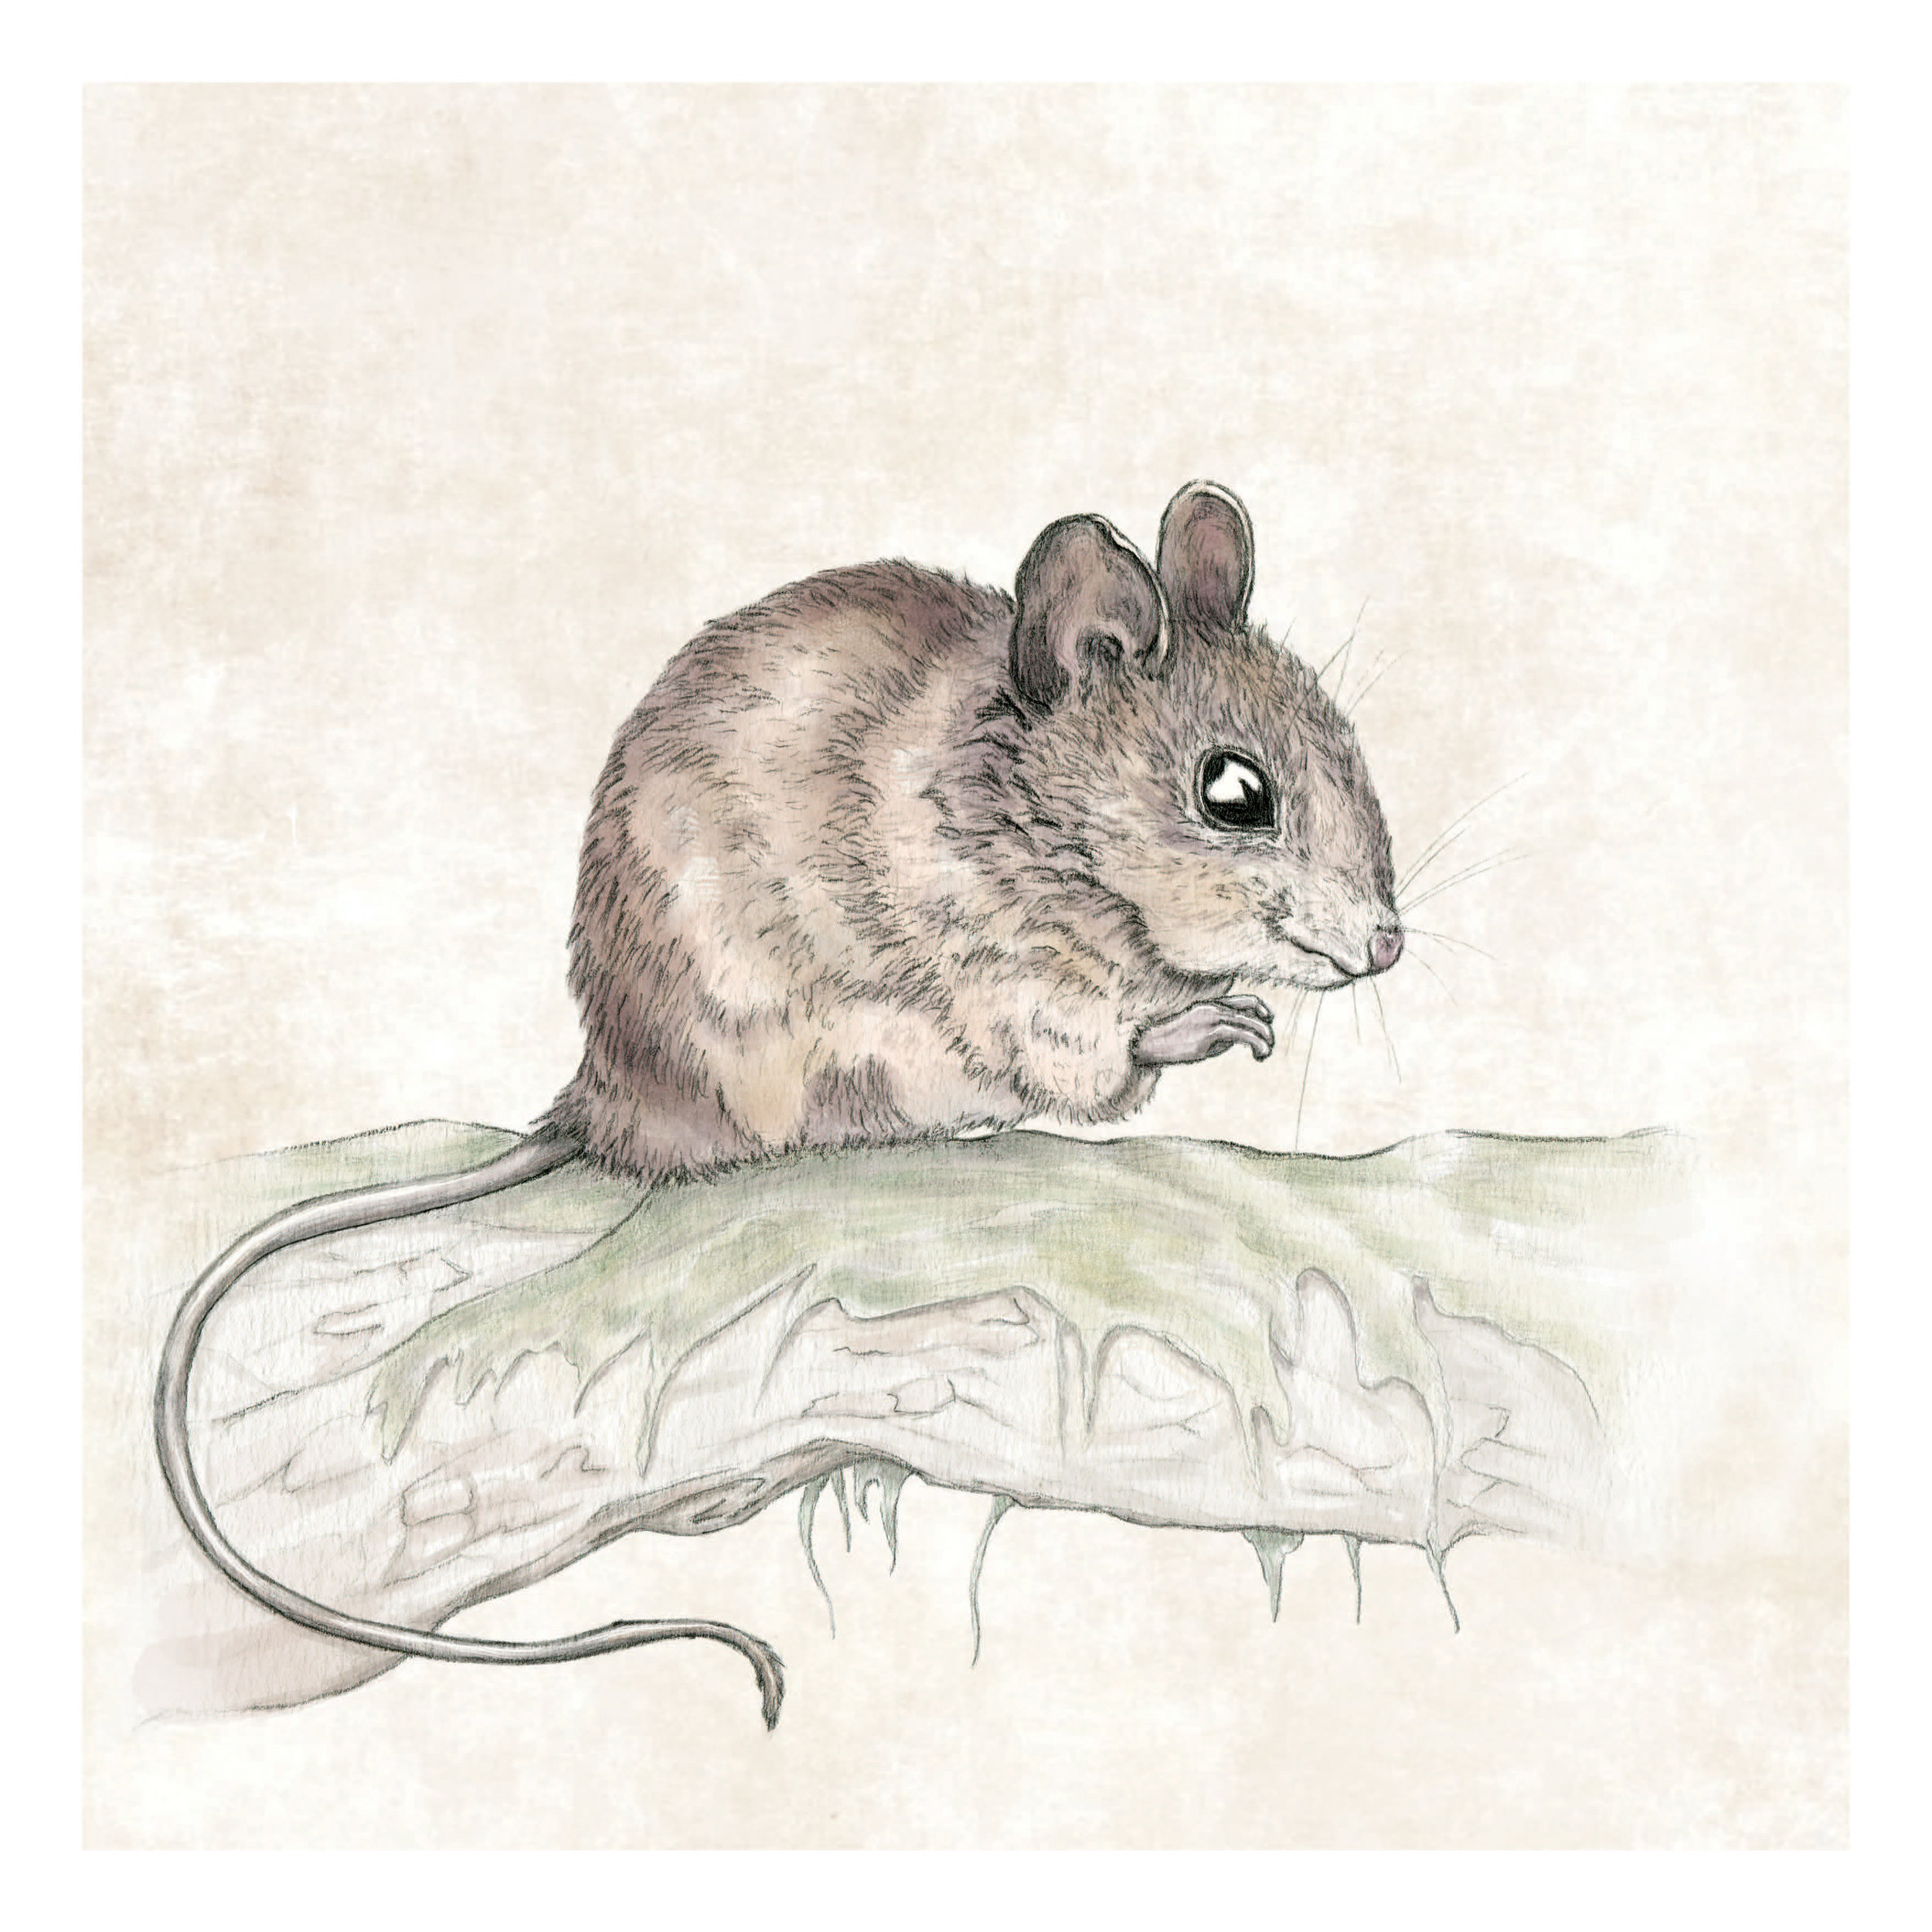 Mouse a3 square.jpg